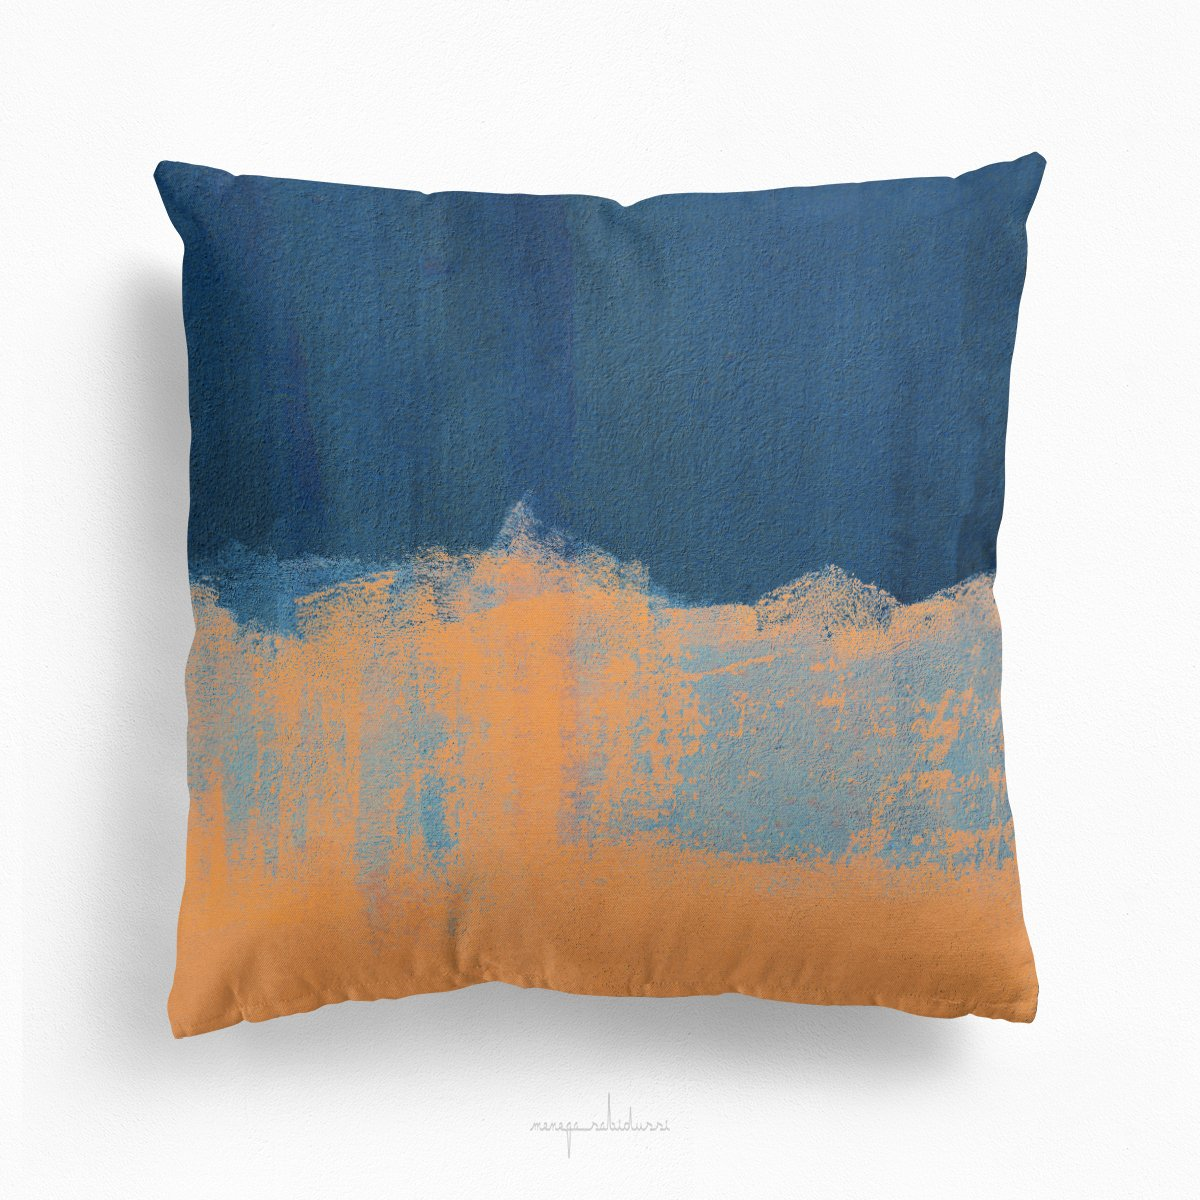 'Summer Beach Abstract' by Menega Sabidussi @society6 | 4th of July Sale: Up to 40% Off Everything Today | Indoor Outdoor #pillows #throwpillows #decor #interiorstyling #apartmenttherapy #interiorinspo #homeinspo #outdoorstyling #lifestyle #society6